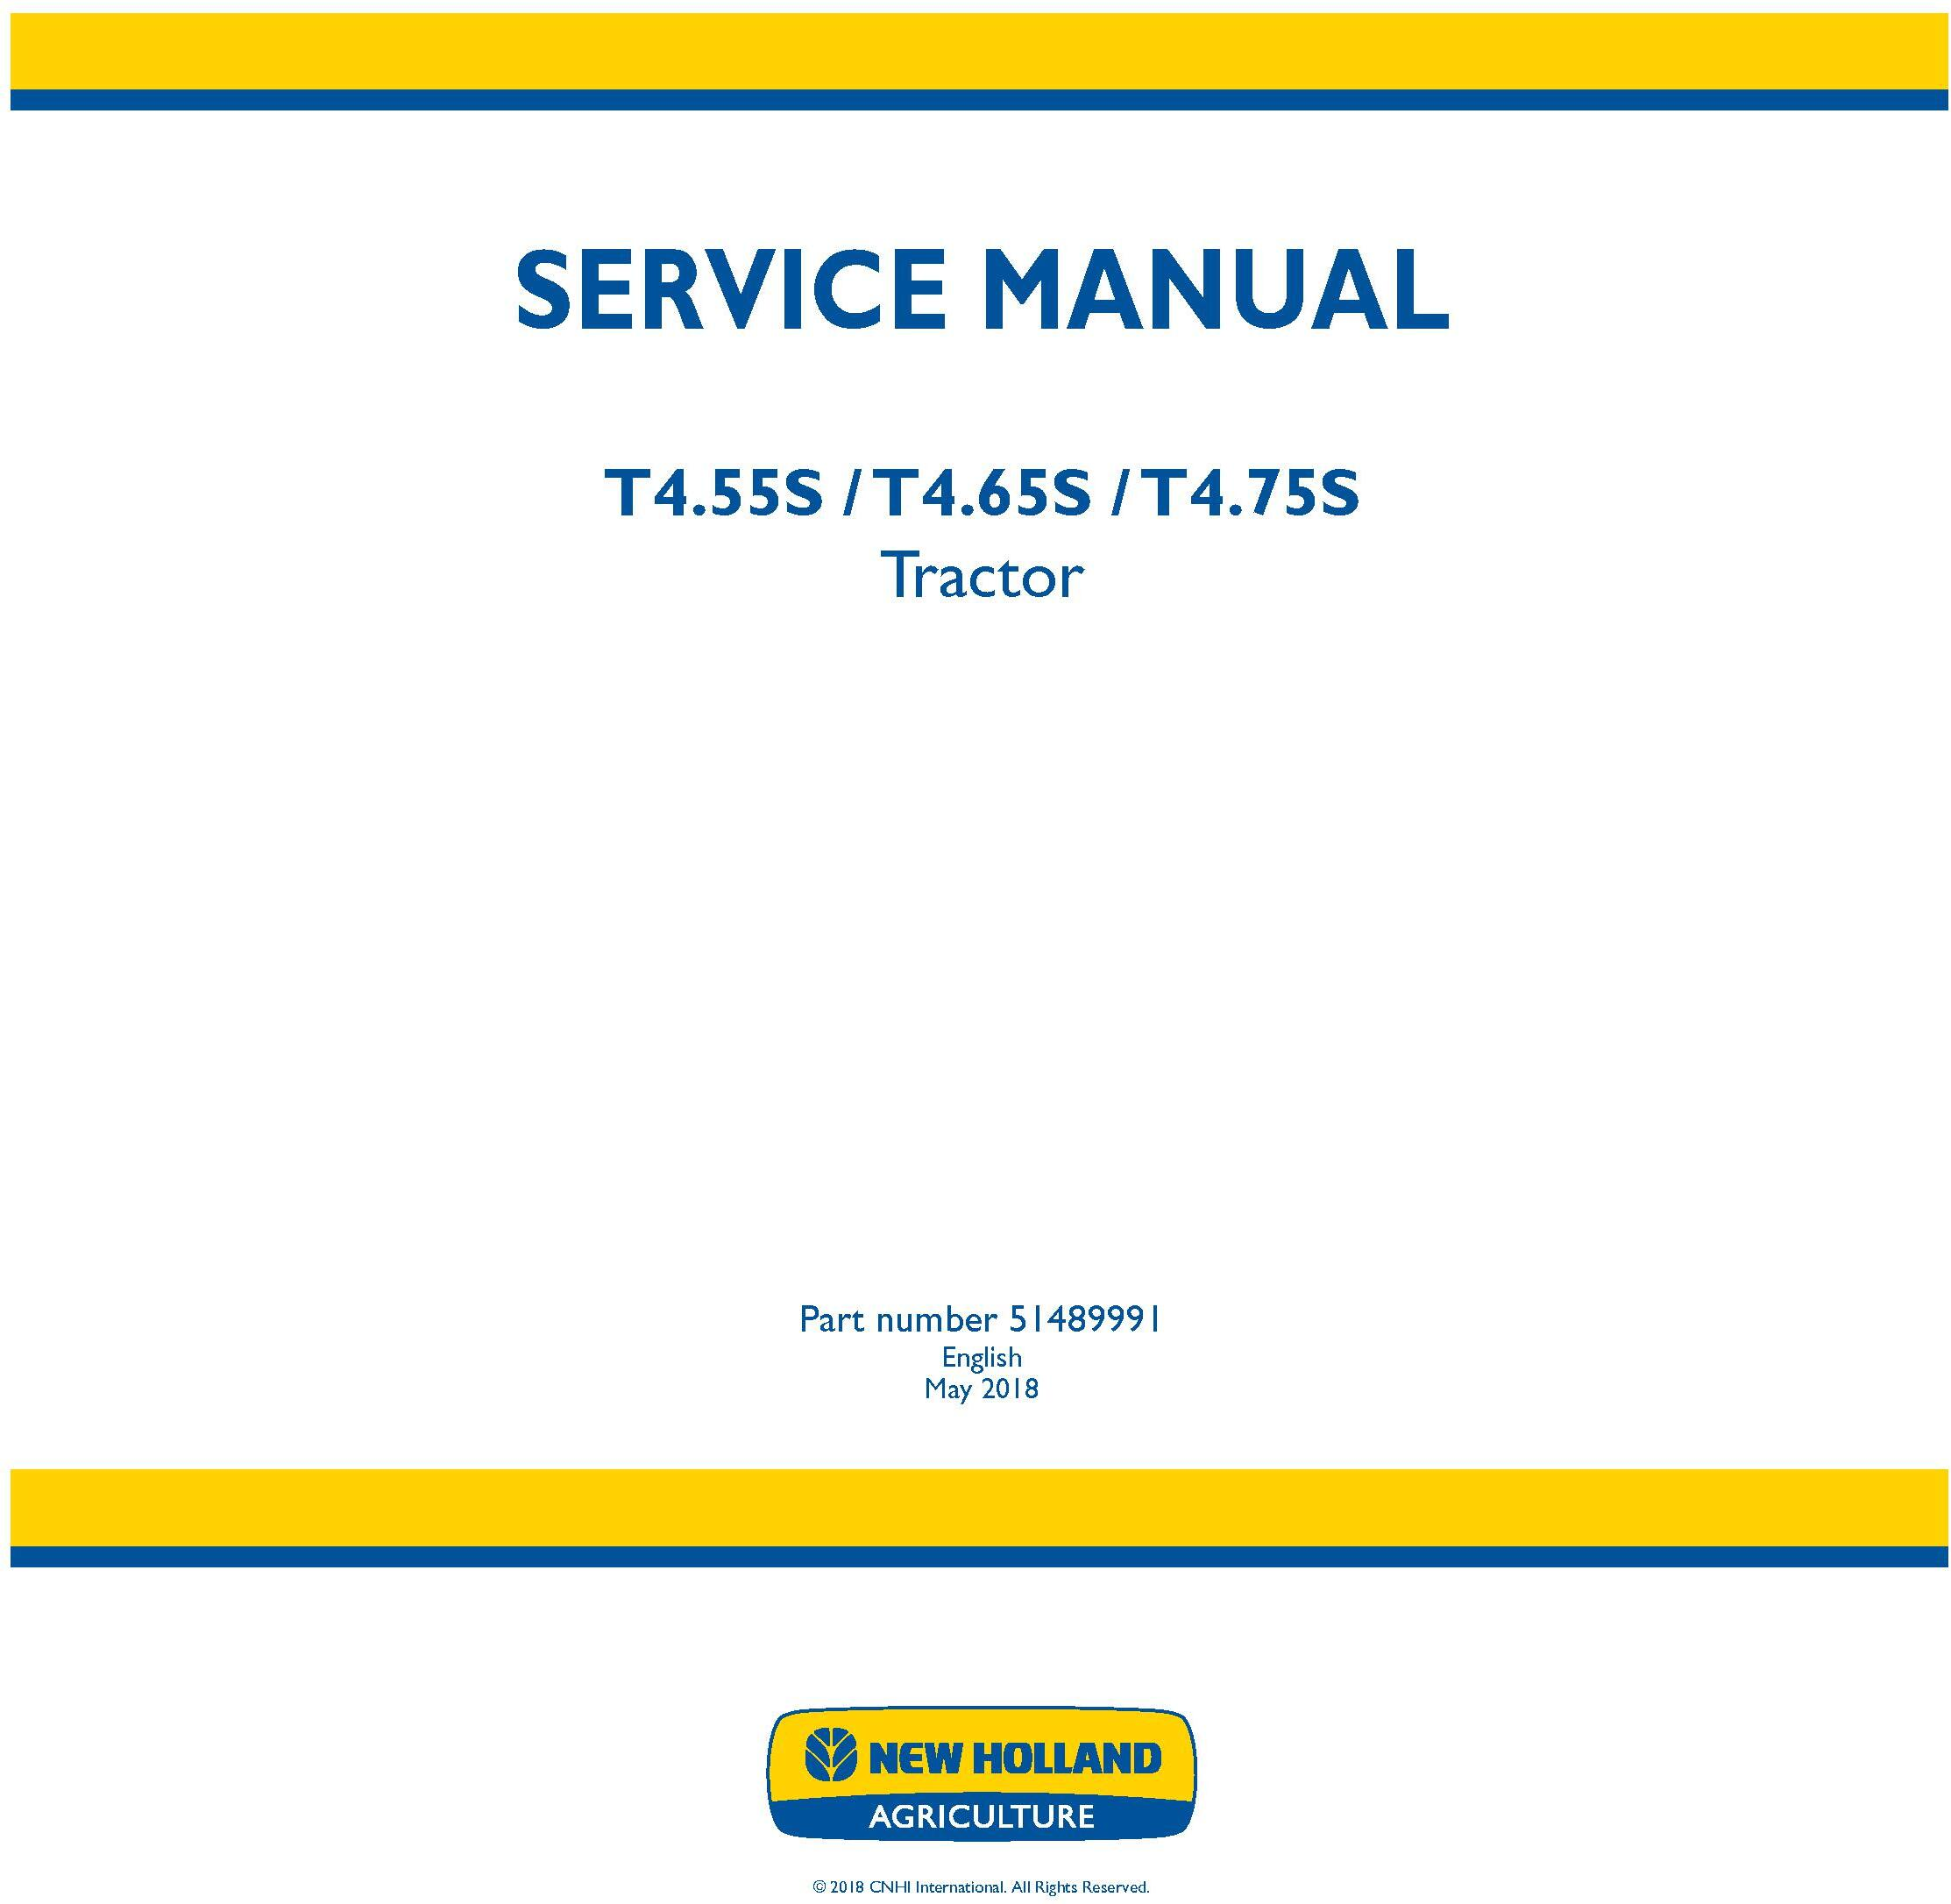 New Holland T4.55S, T4.65S, T4.75S Tractor Service Manual (Australia, New Zeland) - 19516